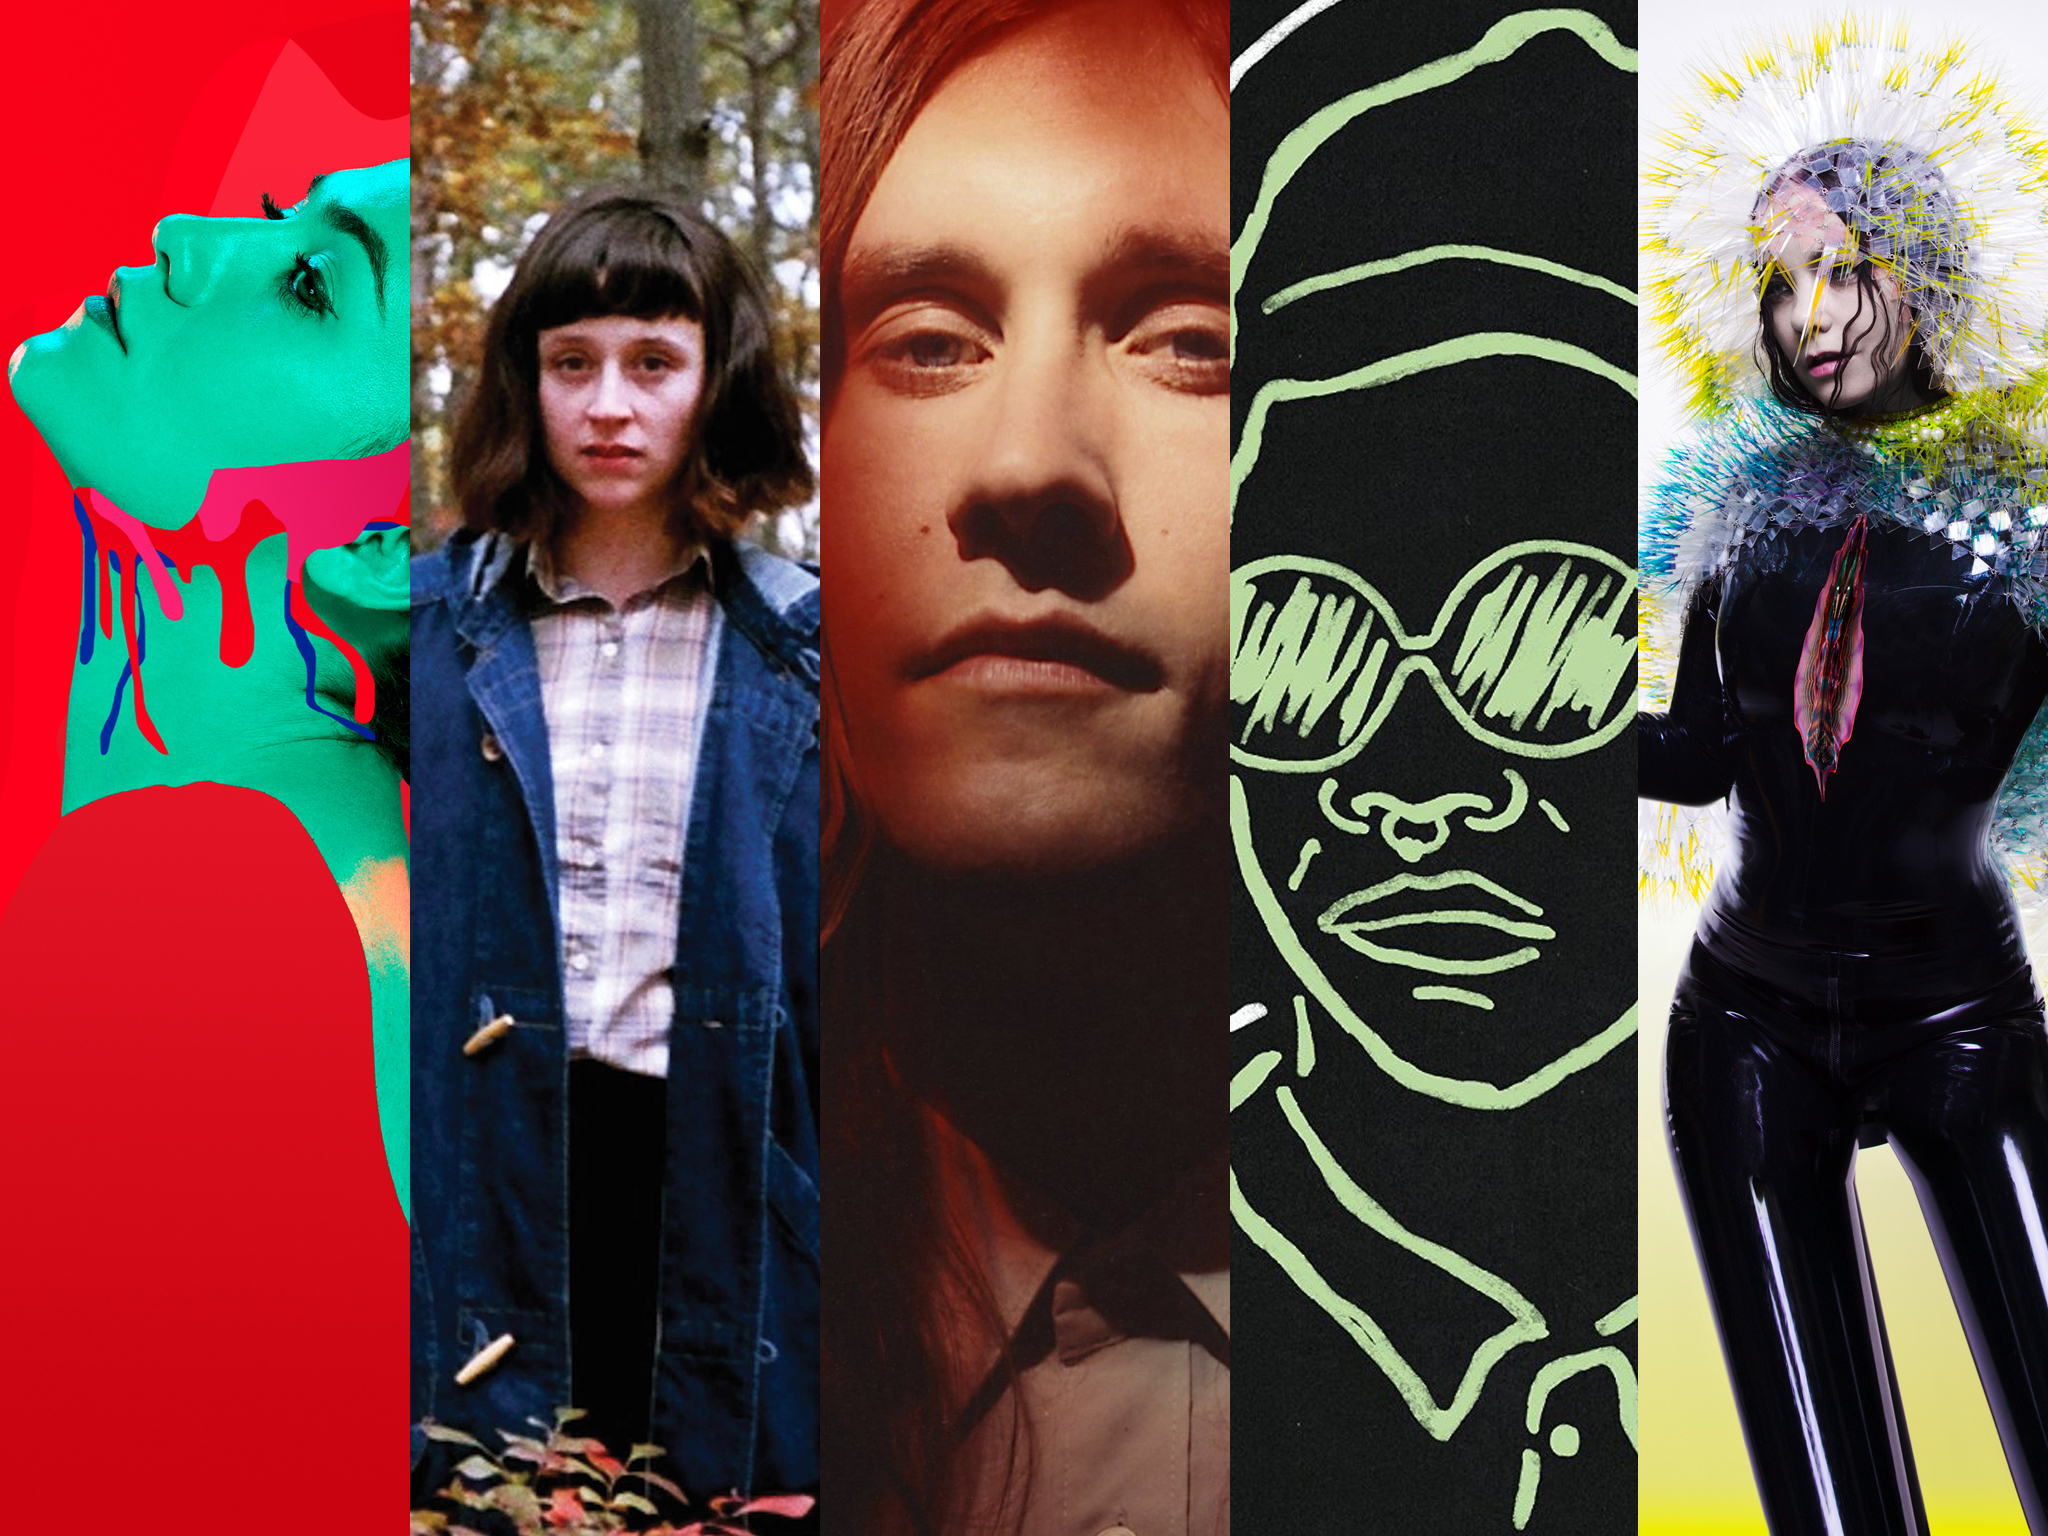 The 25 best albums of 2015 so far